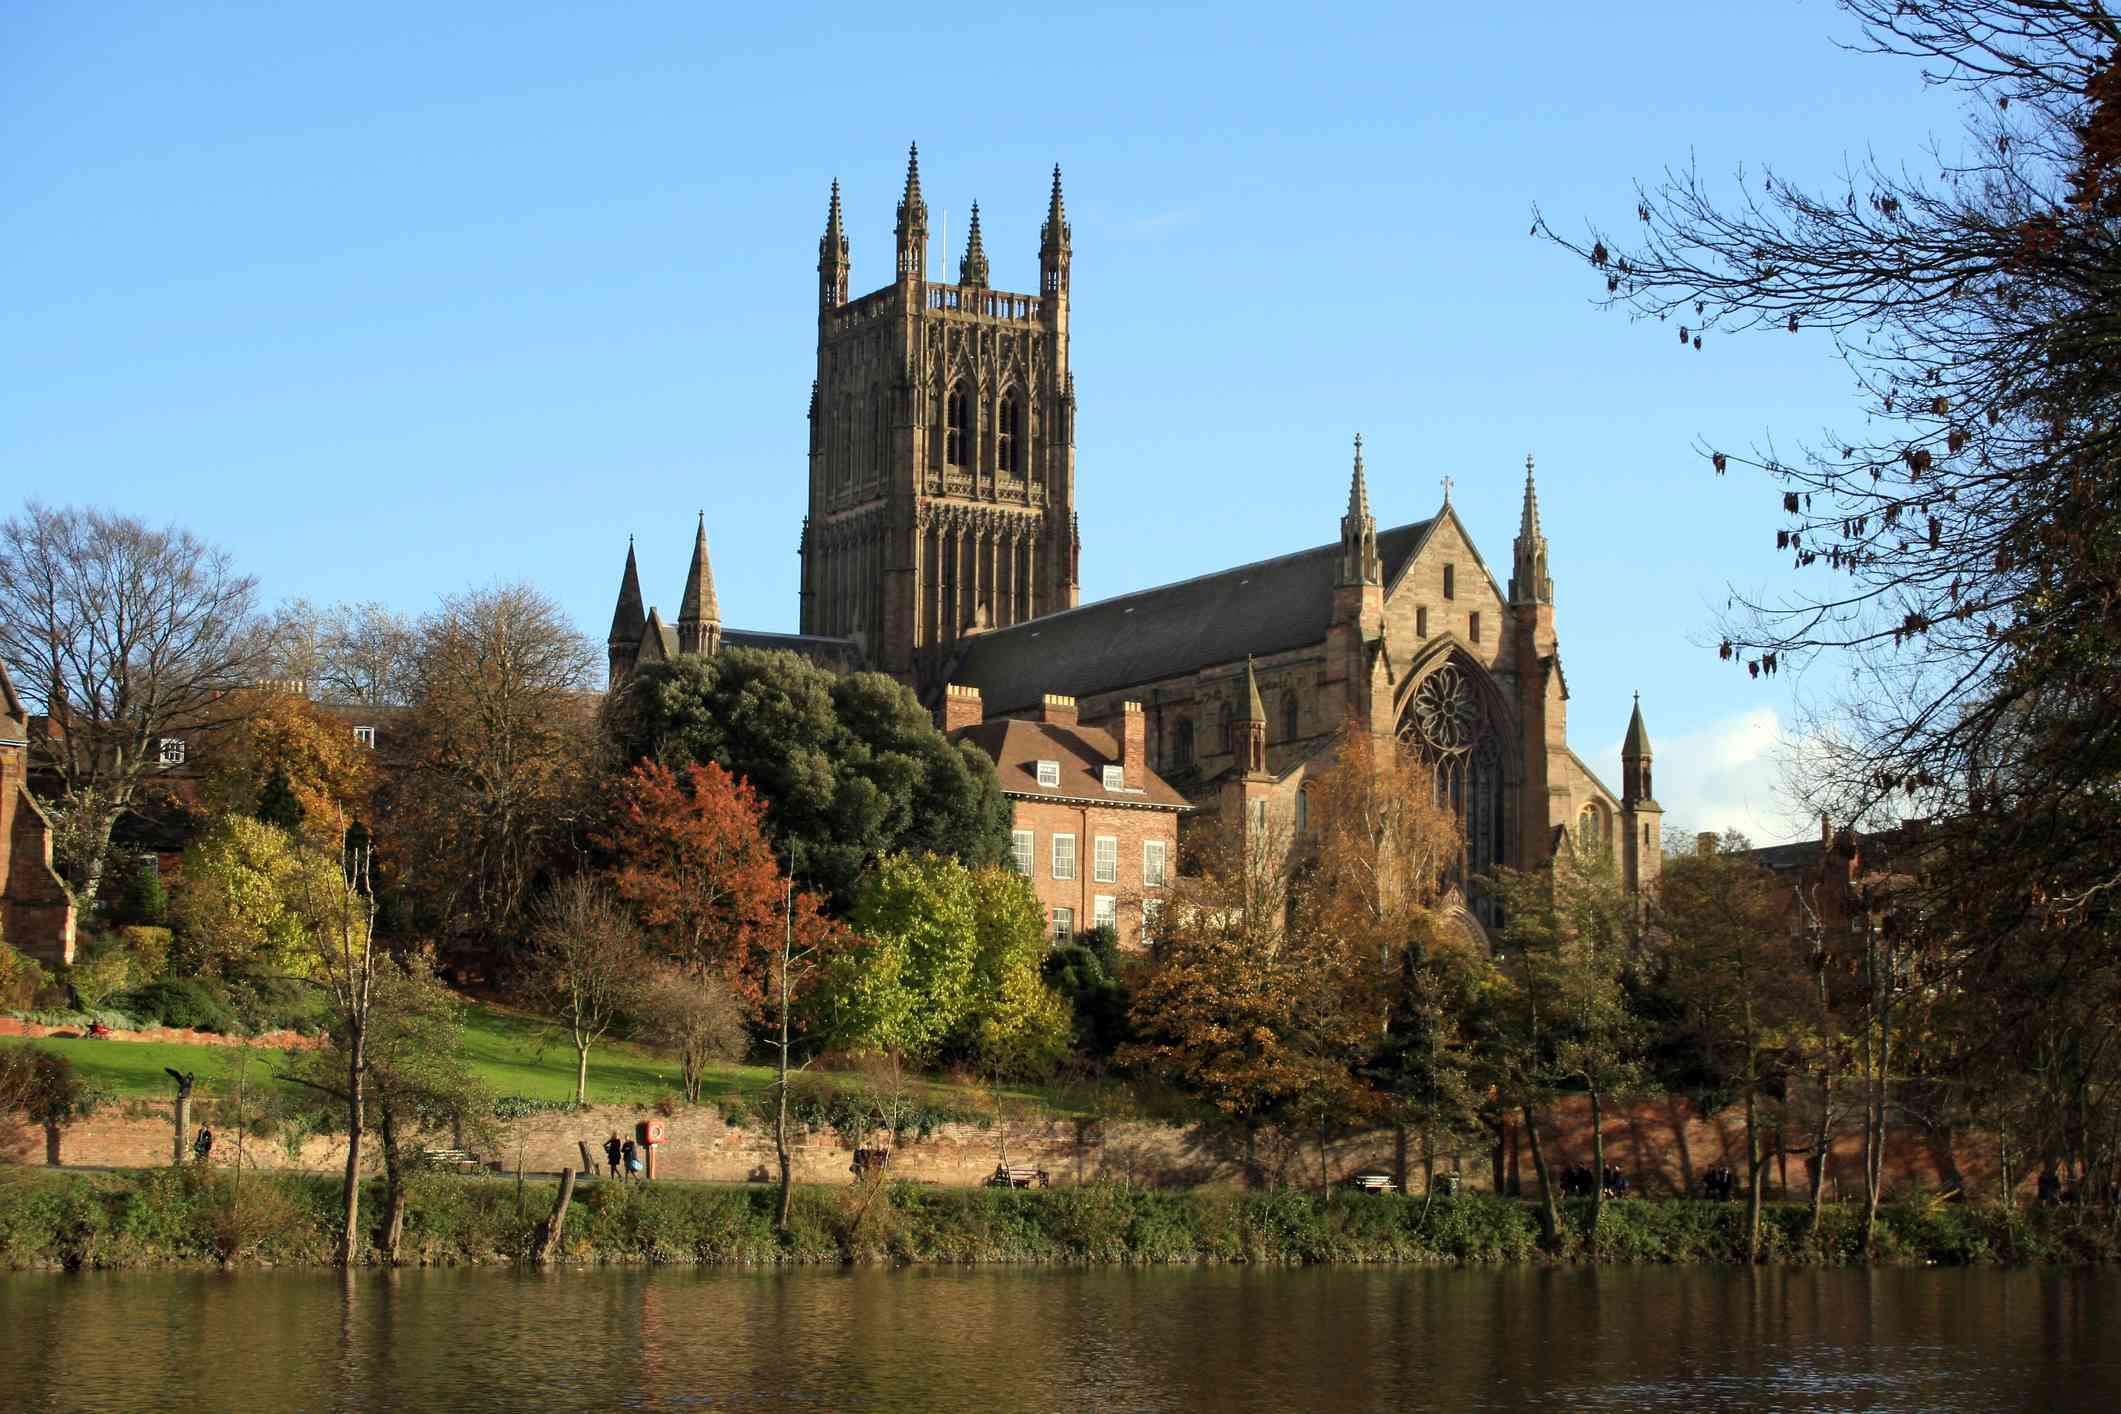 Worcester Cathedral and grounds as seen from across the pond